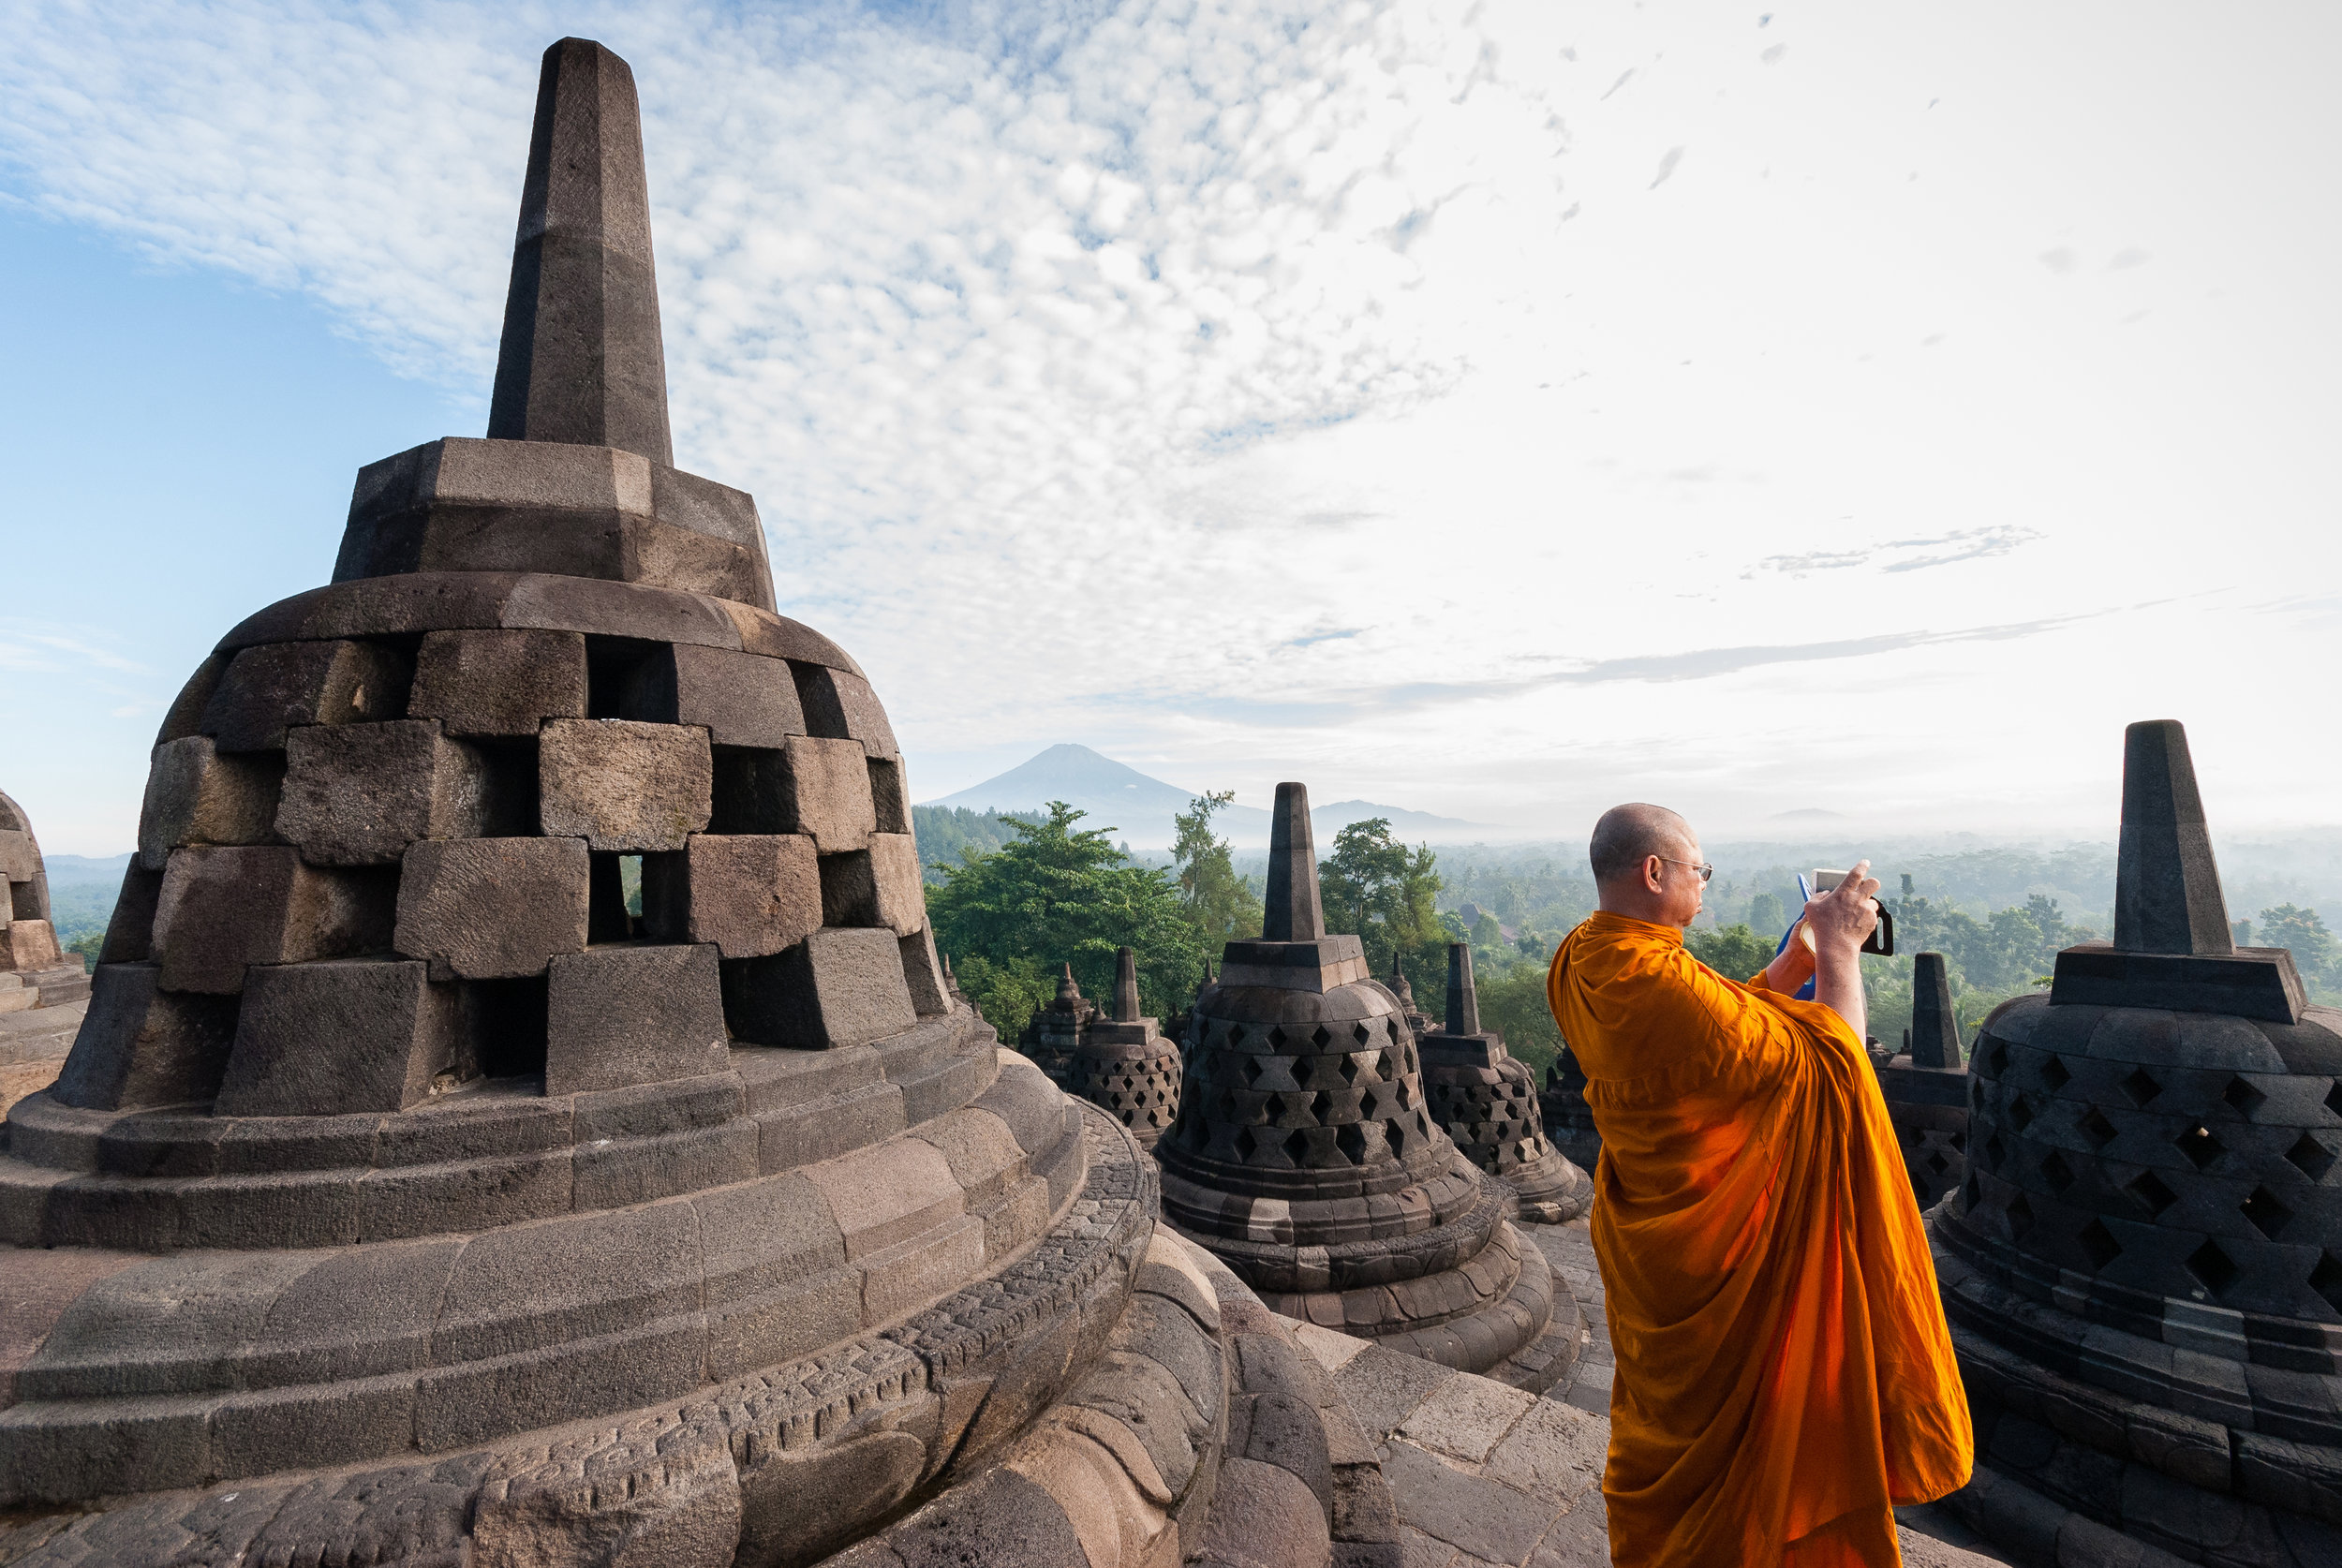 A monk enjoys the Borobudur view, the world's largest Buddhist temple. The temple is decorated with 2,672 relief panels and 504 Buddha statues. The central dome is surrounded by 72 Buddha statues, each seated inside a perforated stupa. Indonesia